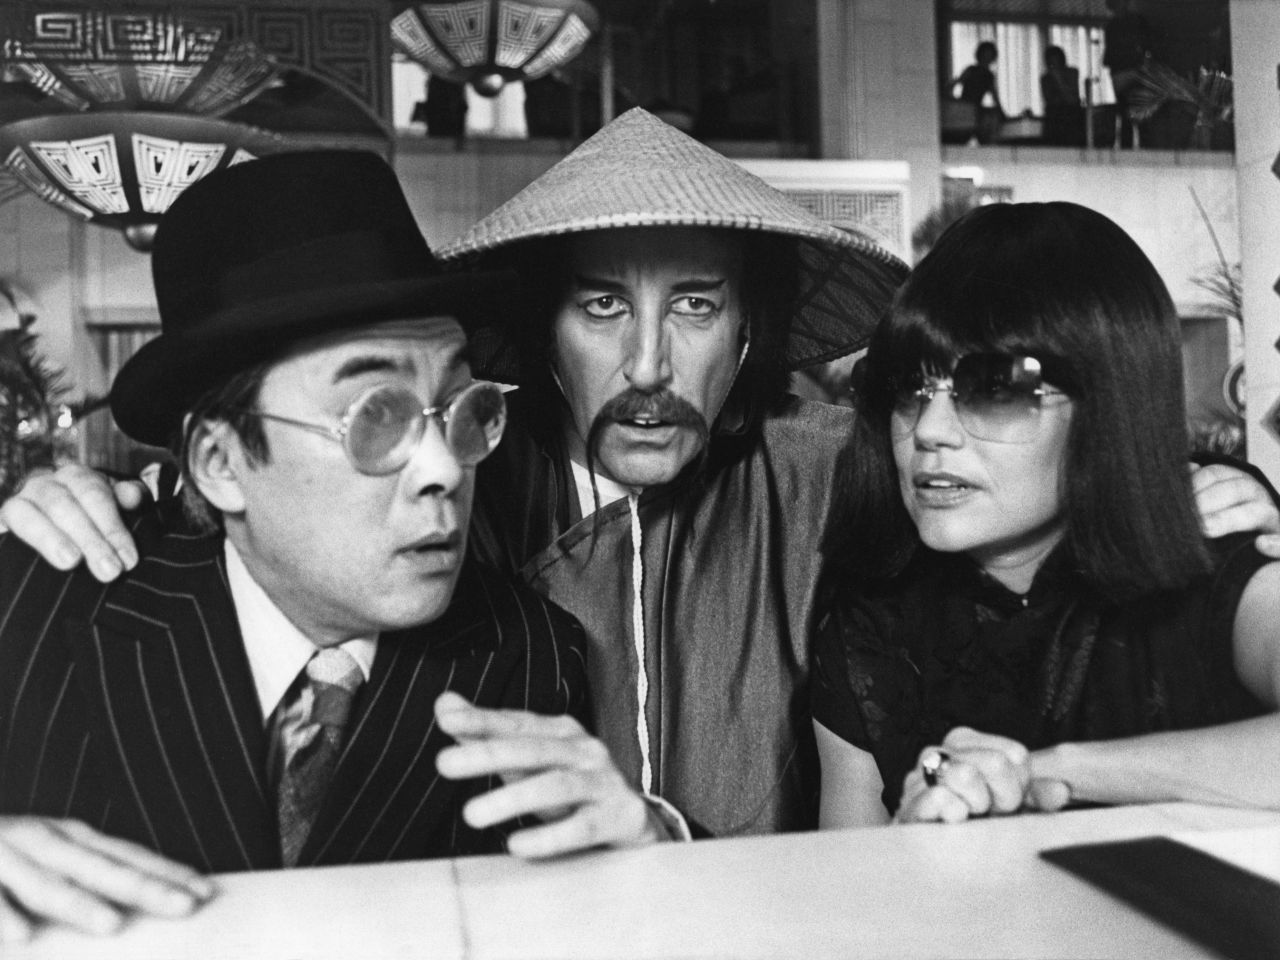 Burt Kwouk, Peter Sellers and Dyan Cannon – Revenge of the Pink Panther